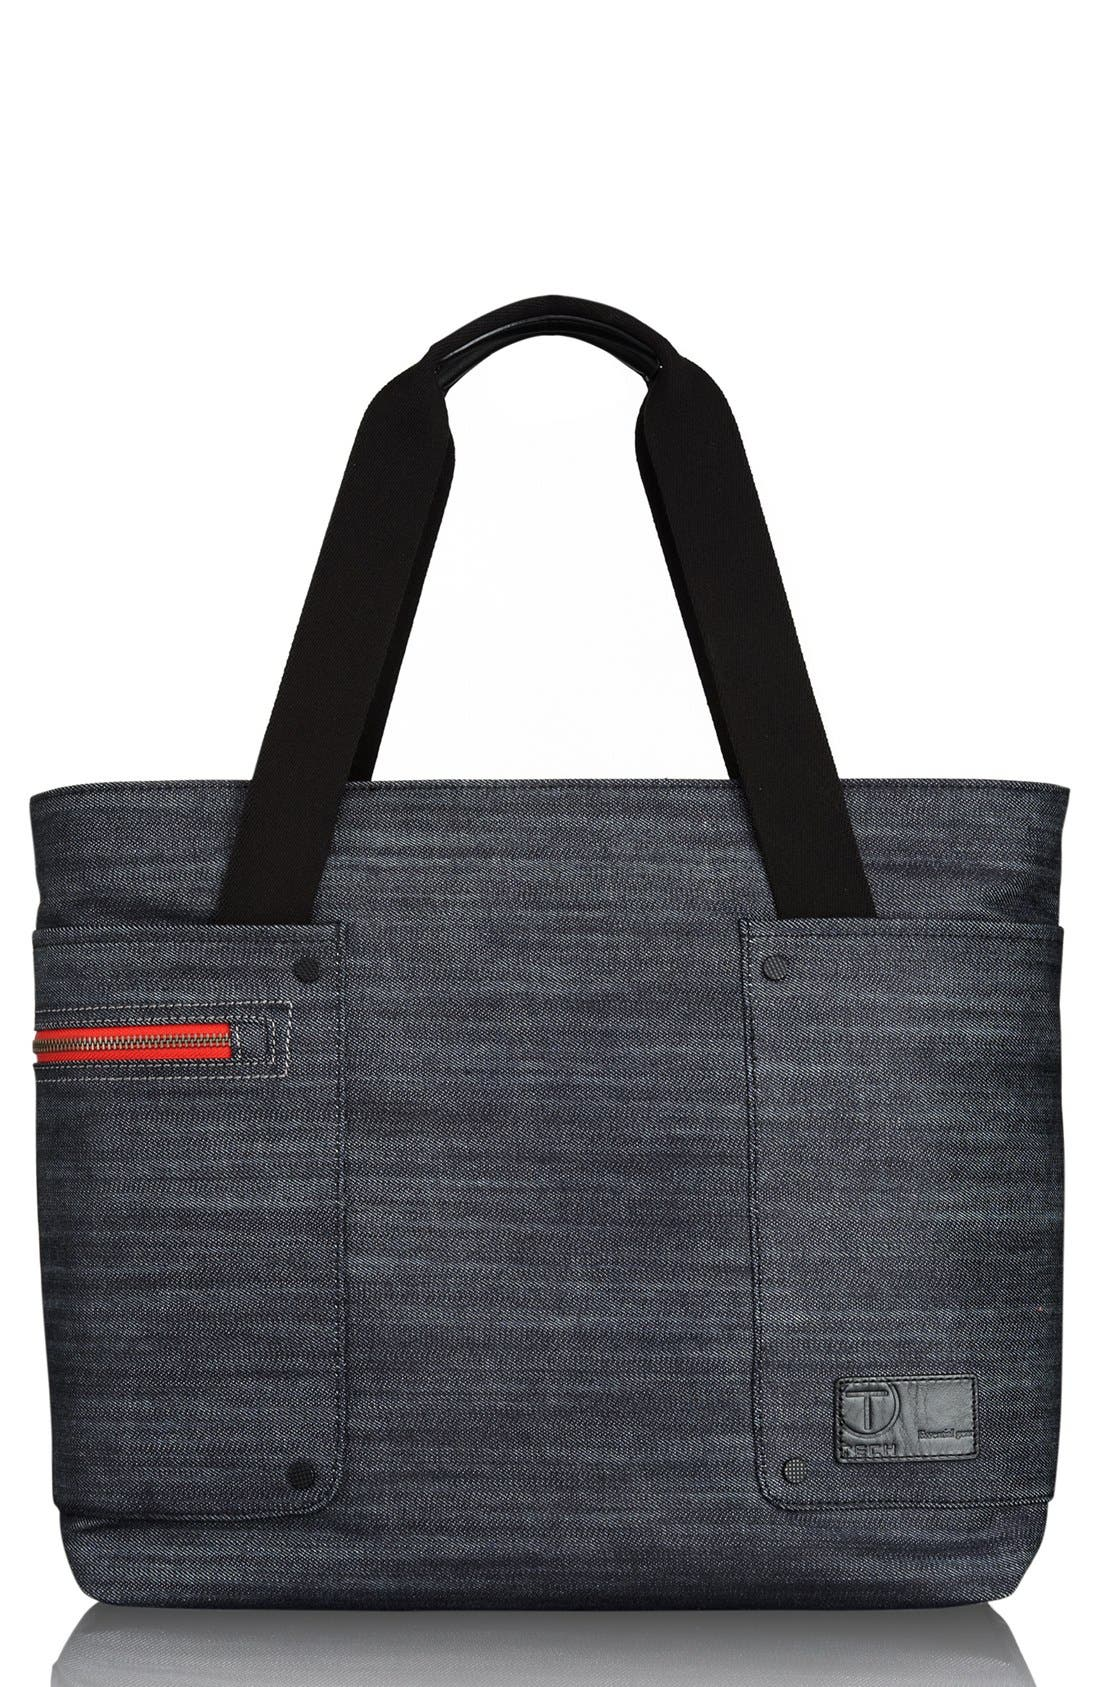 Alternate Image 1 Selected - T-Tech by Tumi 'Icon - Haley' Tote Bag